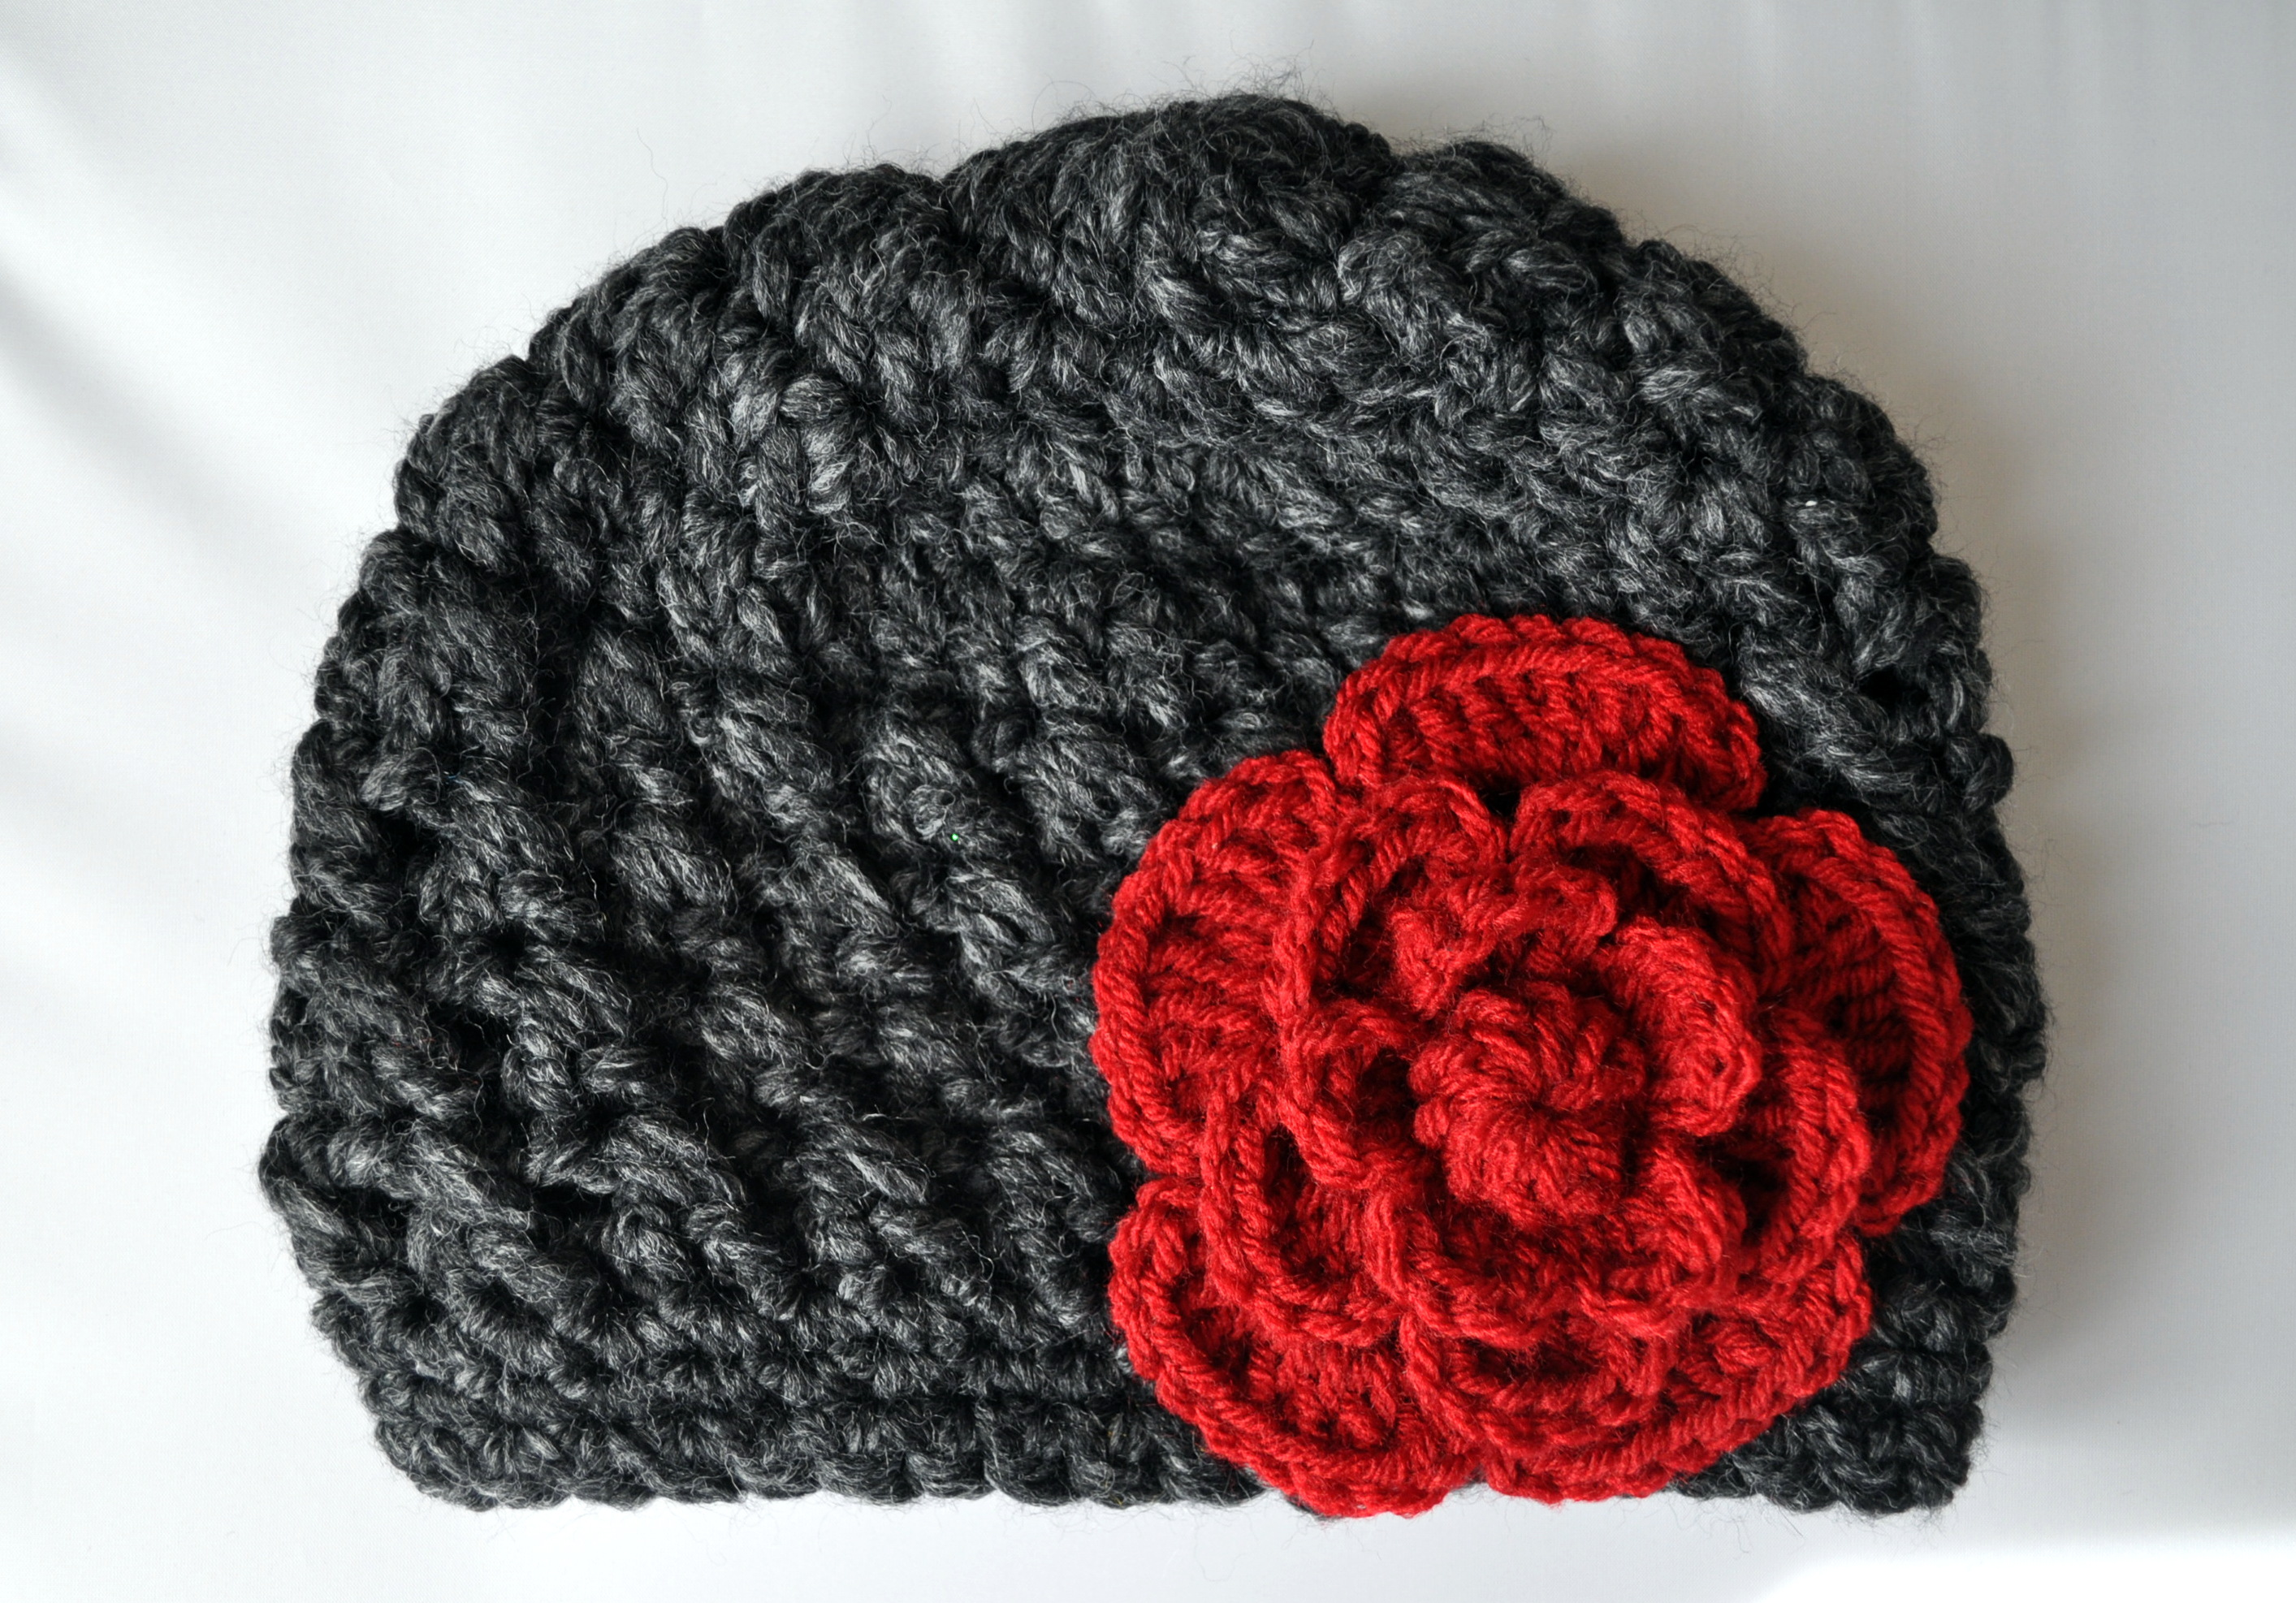 Crochet Chunky Flowered Cloche Pattern Classy Crochet